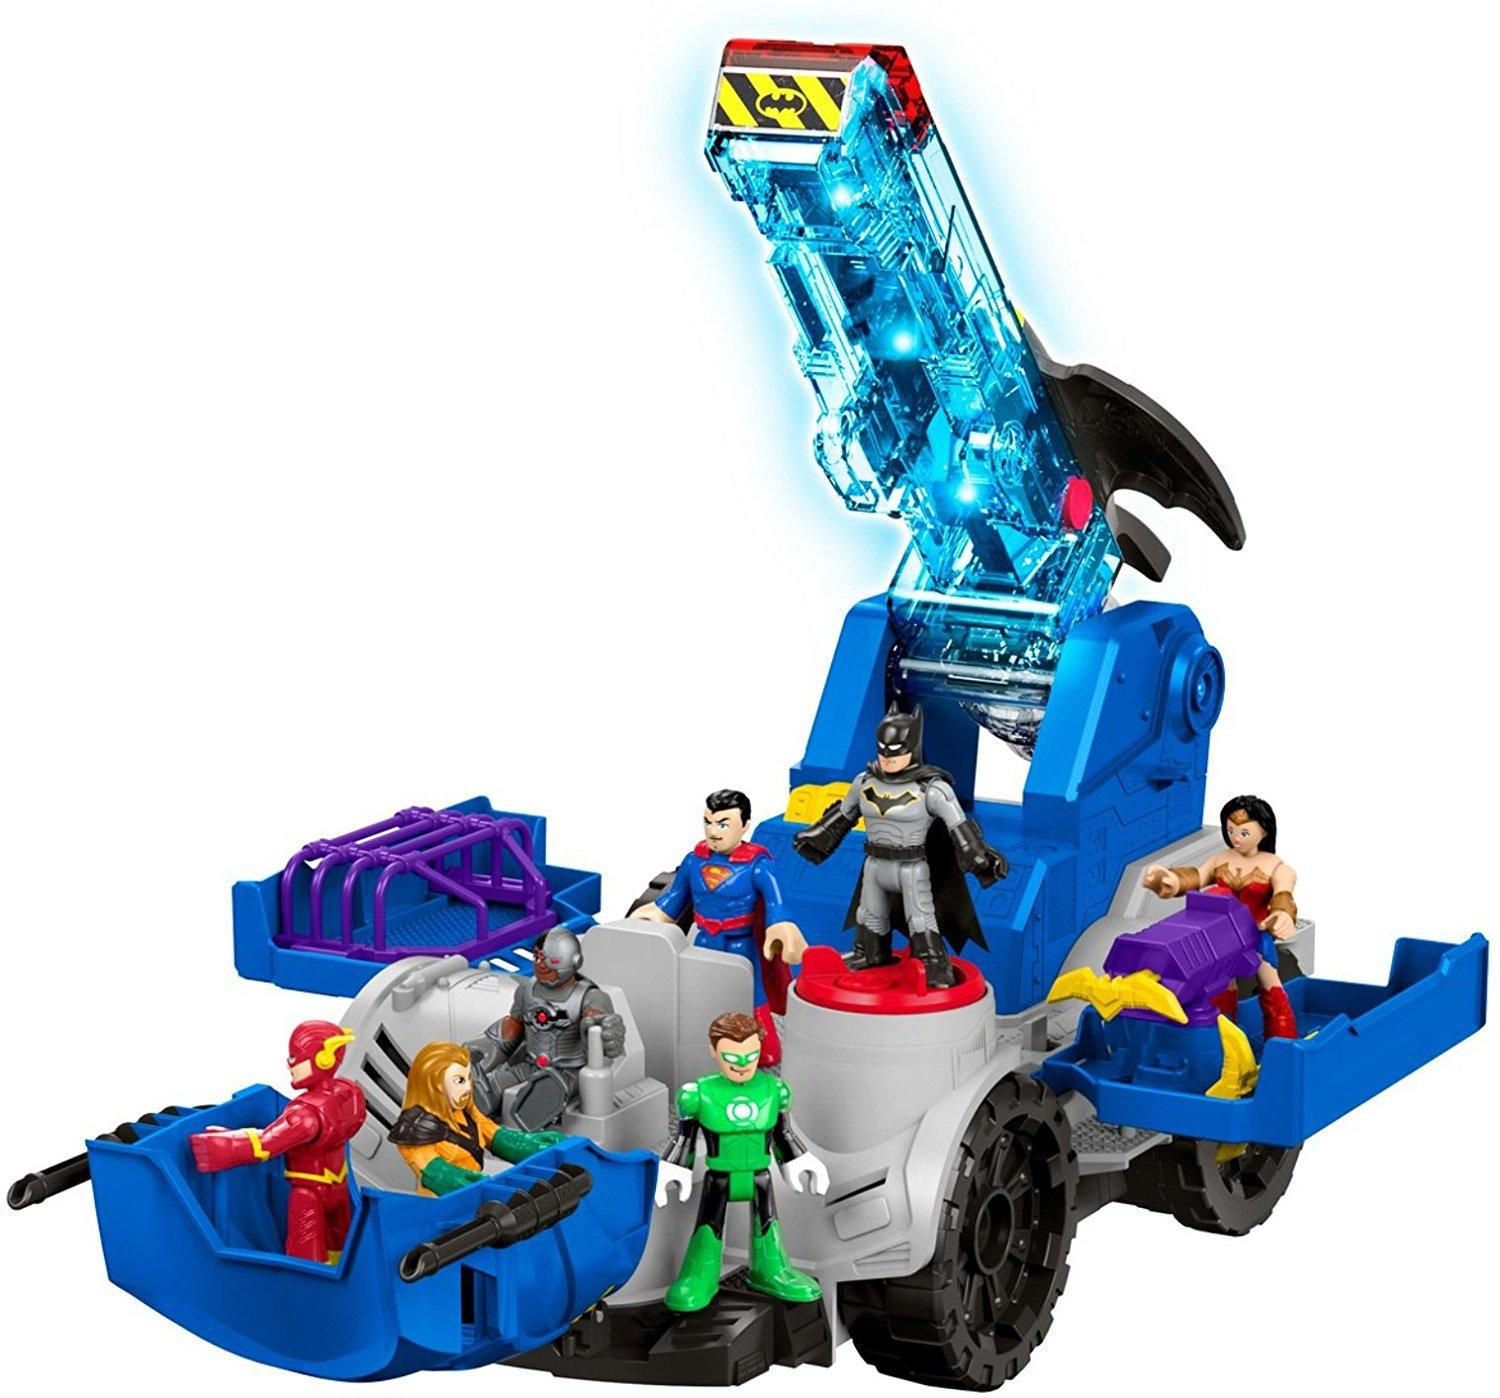 remote control toys for with B01mz8f4ub on A 52687111 furthermore 32824040153 as well Watch additionally Rc Cars 3 Ultimate Lightning Mcqueen 203086005 furthermore toystate.